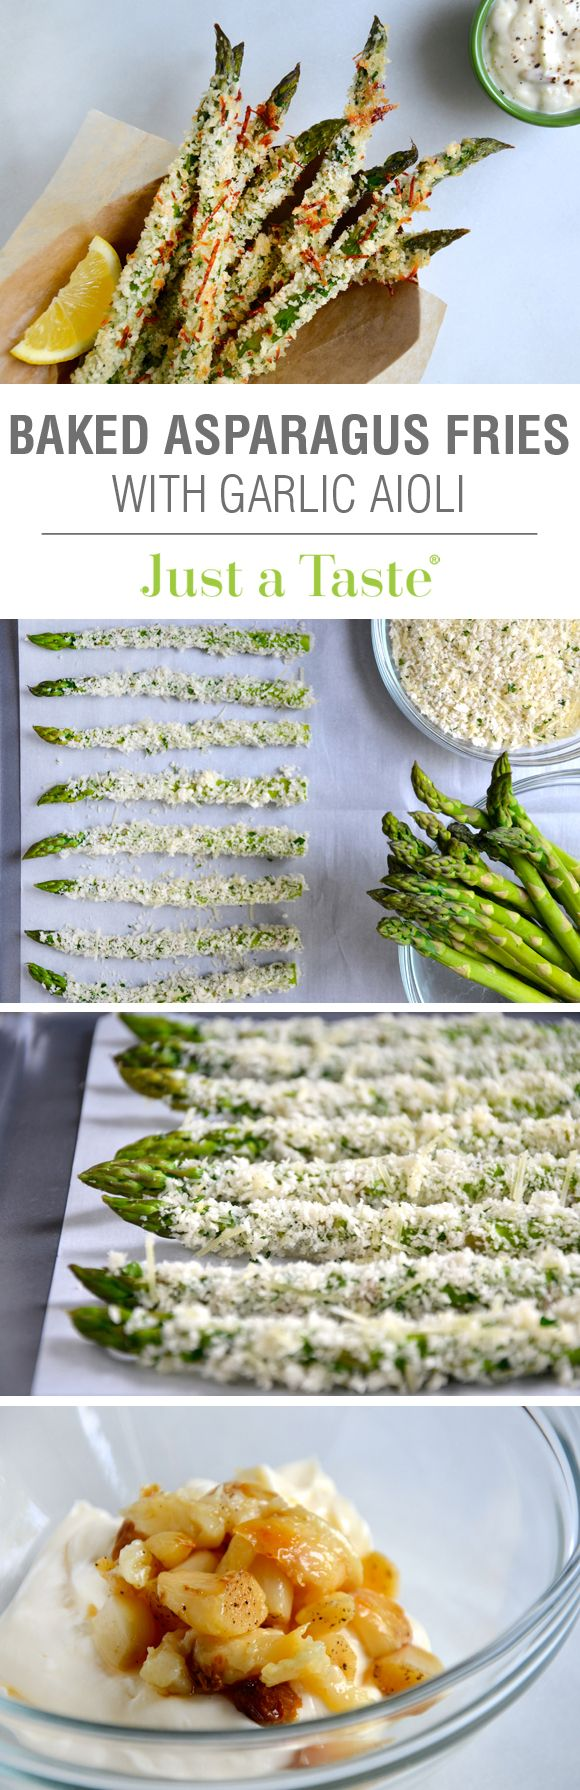 Baked Asparagus Fries with Roasted Garlic Aioli #recipe on justataste.com